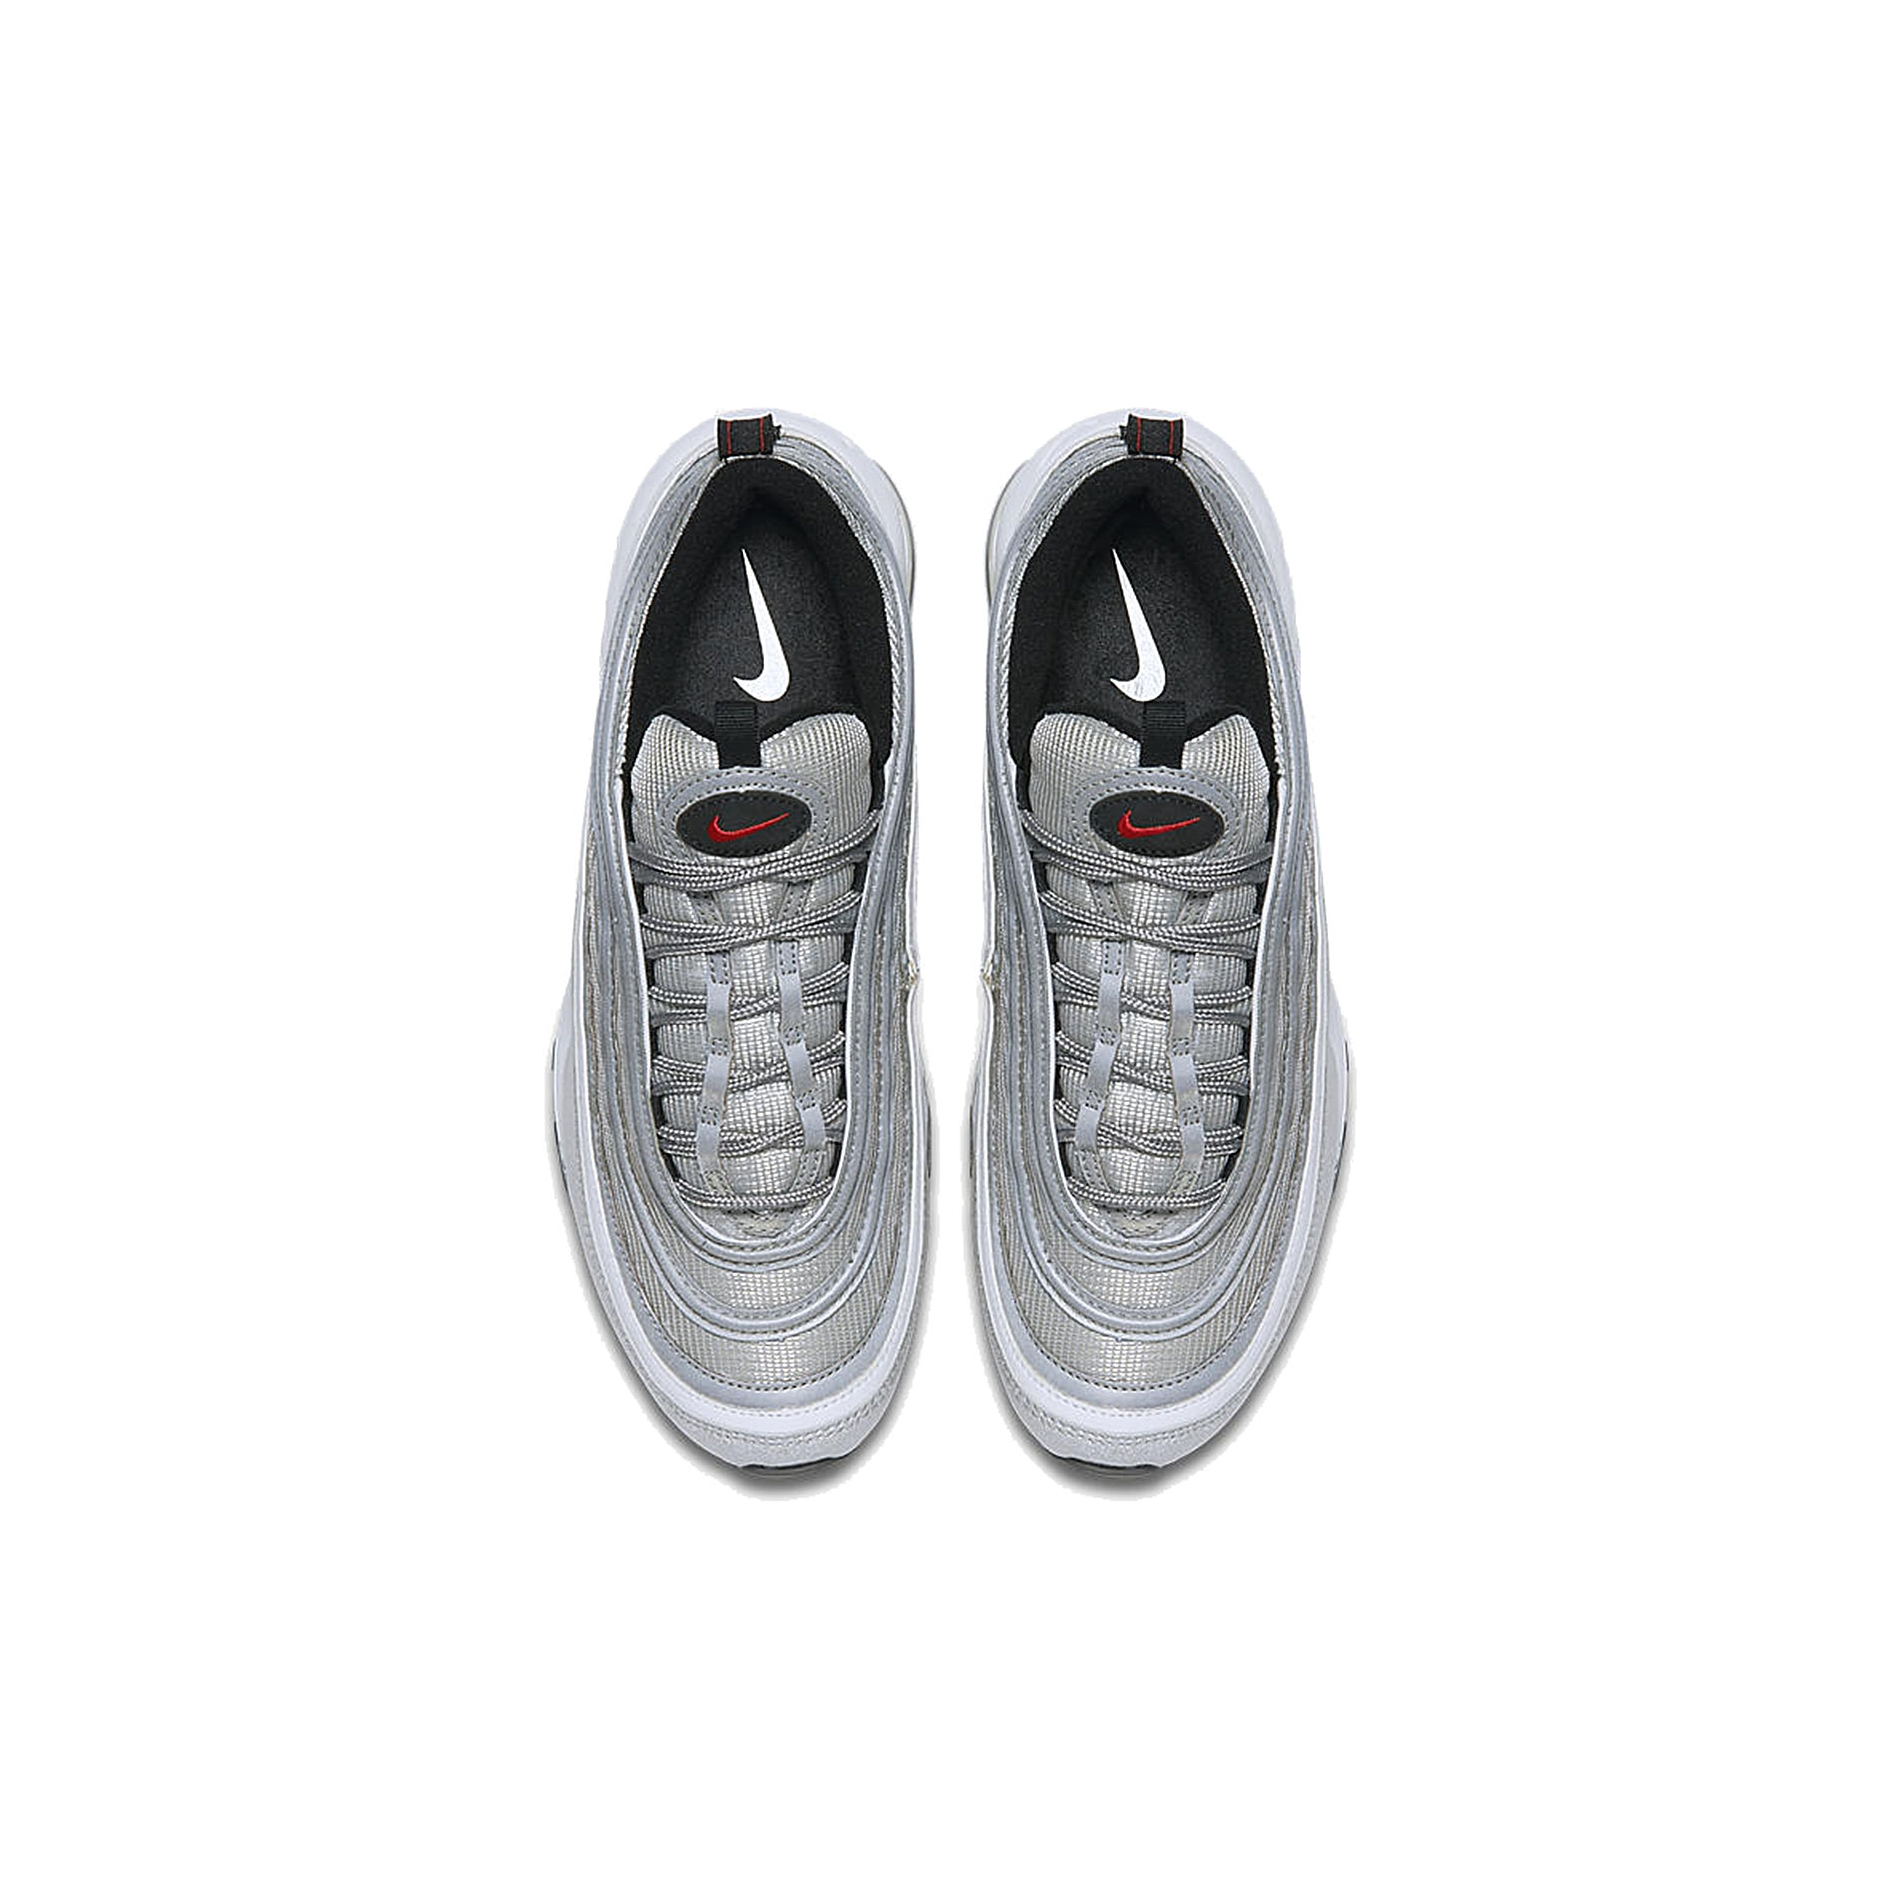 best website f4563 e0c17 ... nike air max 97 og « metallic silver bullet » 884421 001 . ...